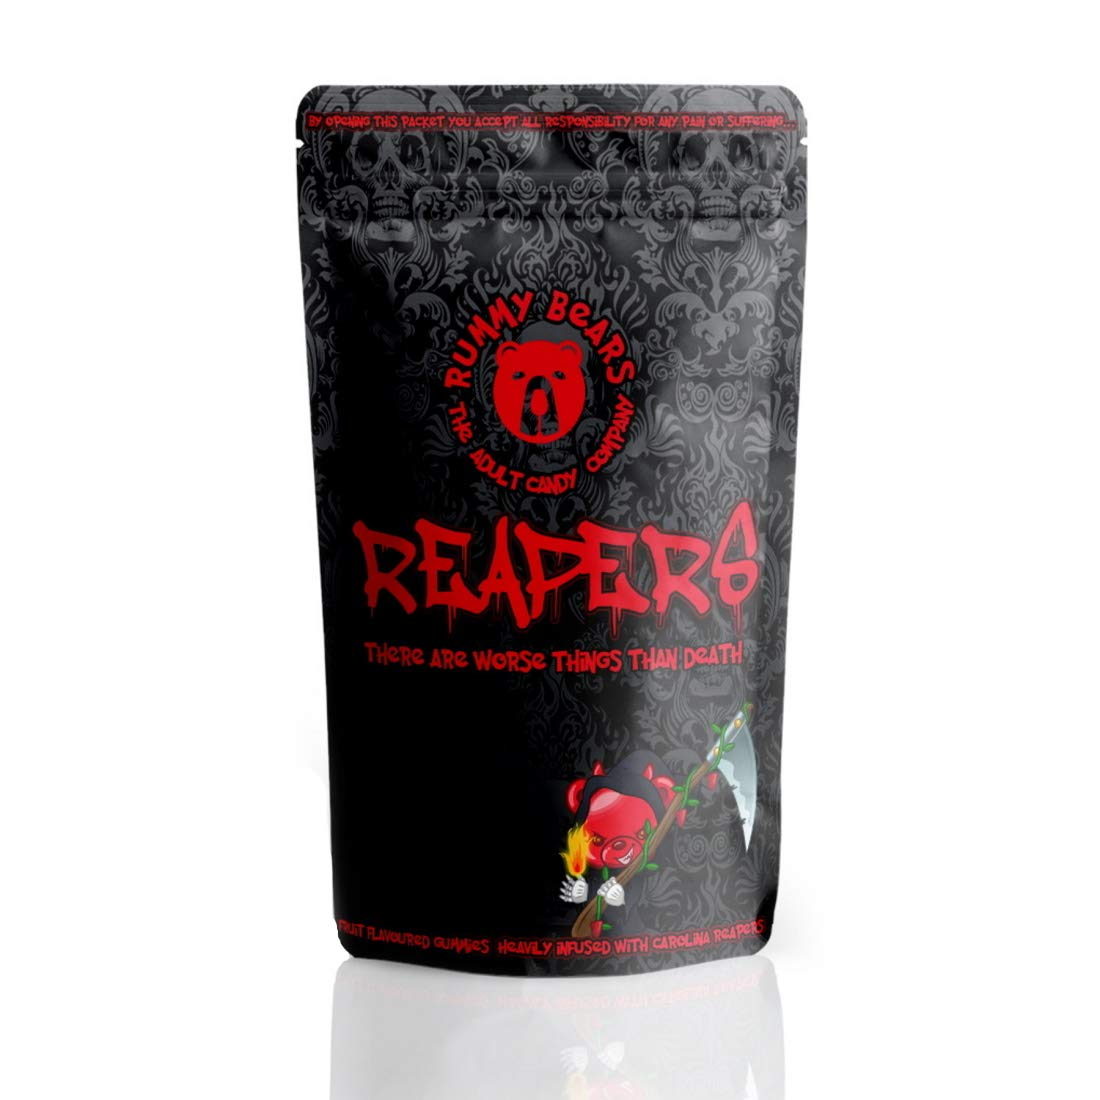 Rummy Bears Reapers -World's Hottest Gummy Bears - Carolina Reaper Extremely Hot Chilli Sweets